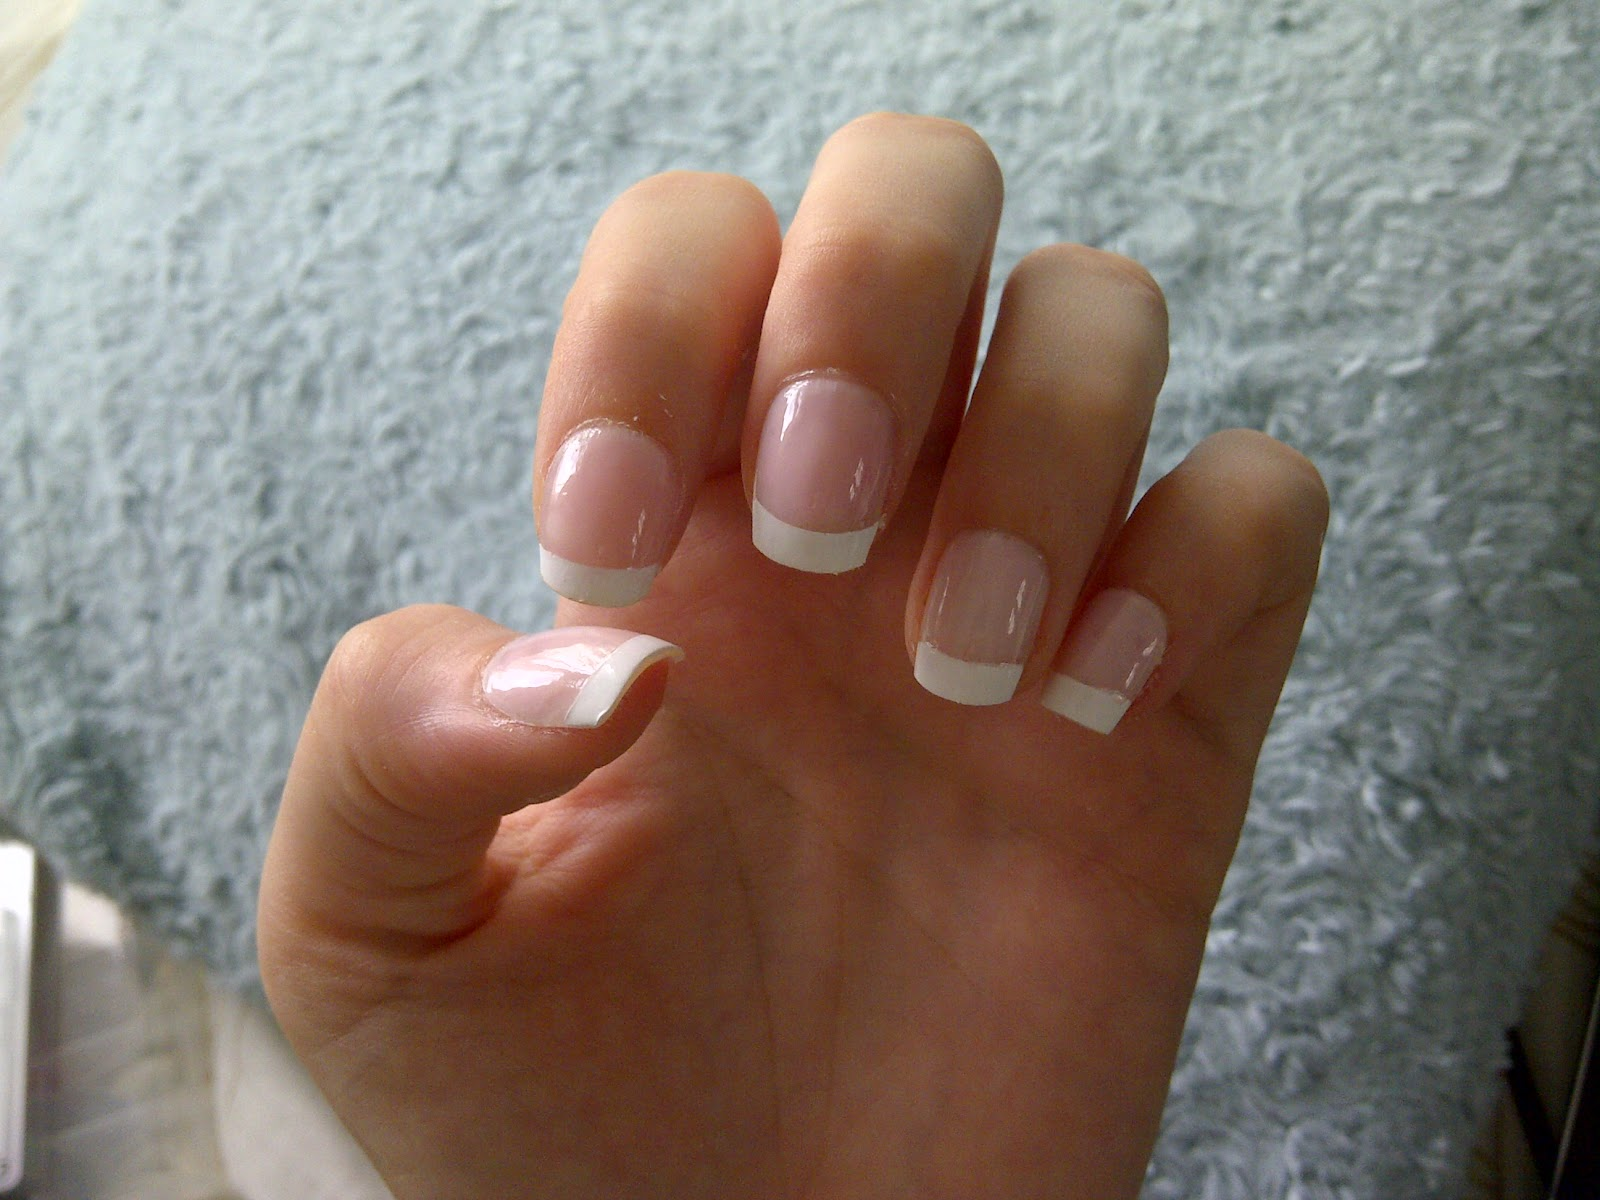 Bows and Bells: DIY Acrylic French Manicure Nails